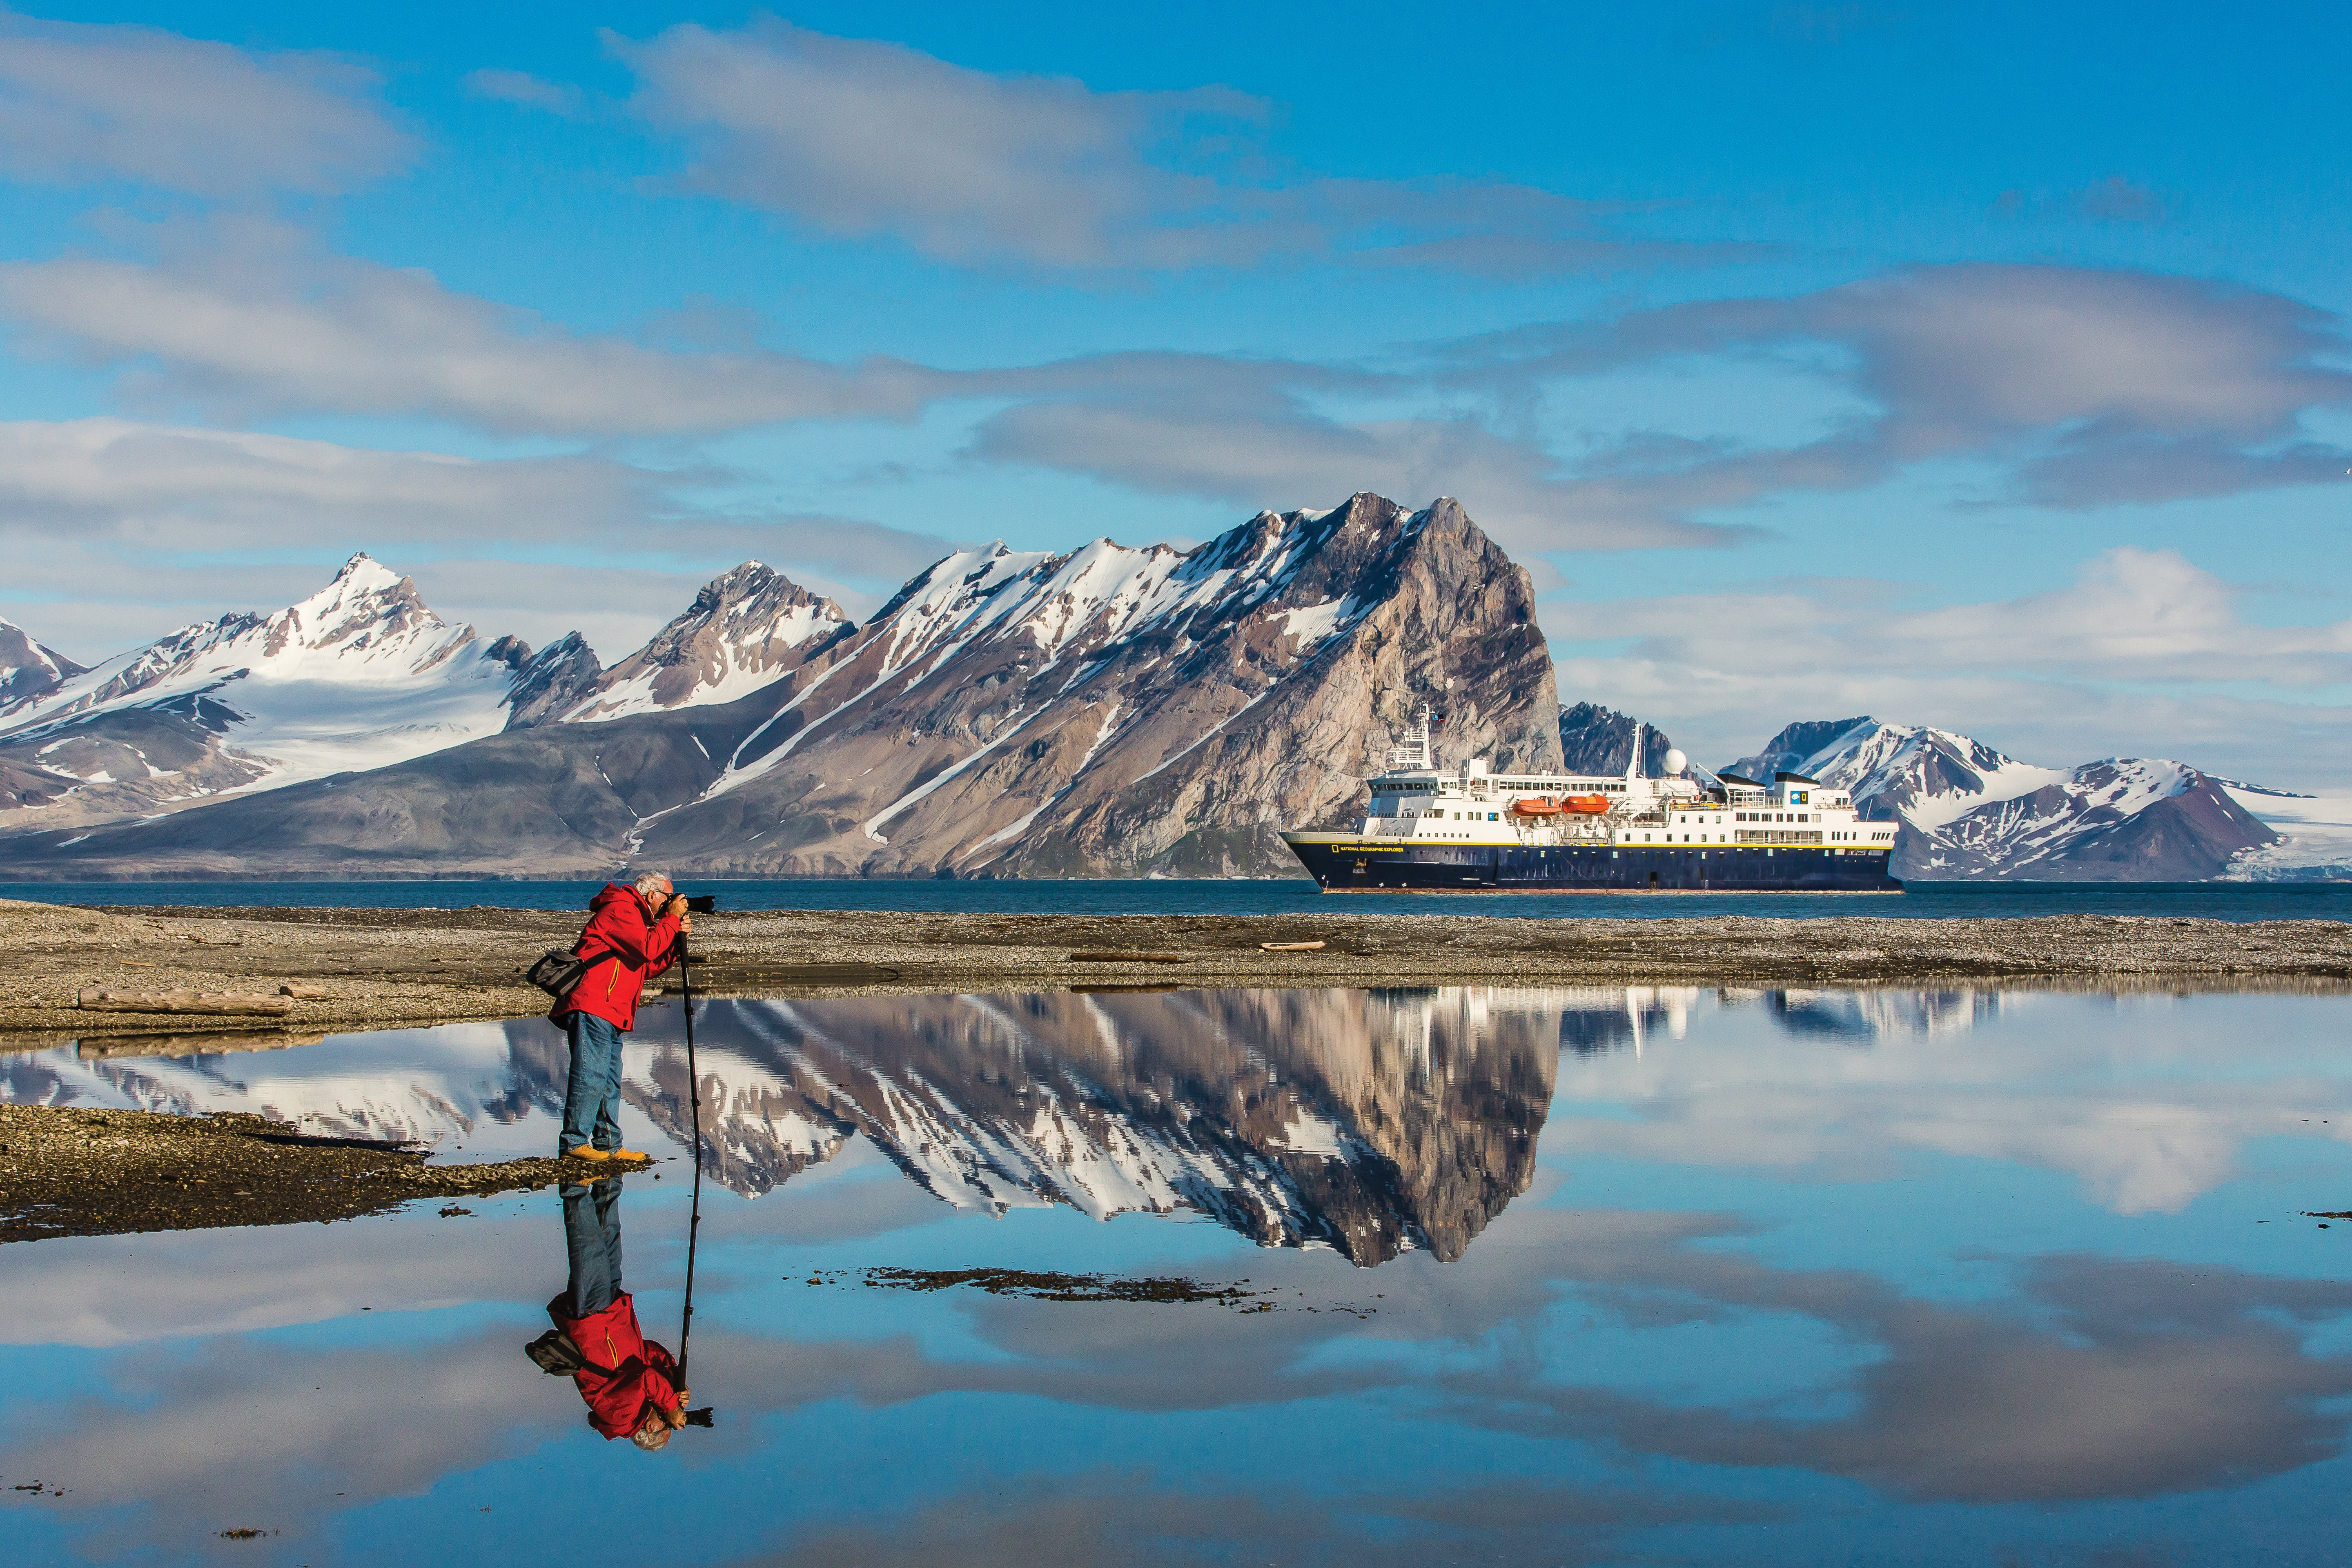 Lindblad makes photographing the Last Frontier easy and educational.